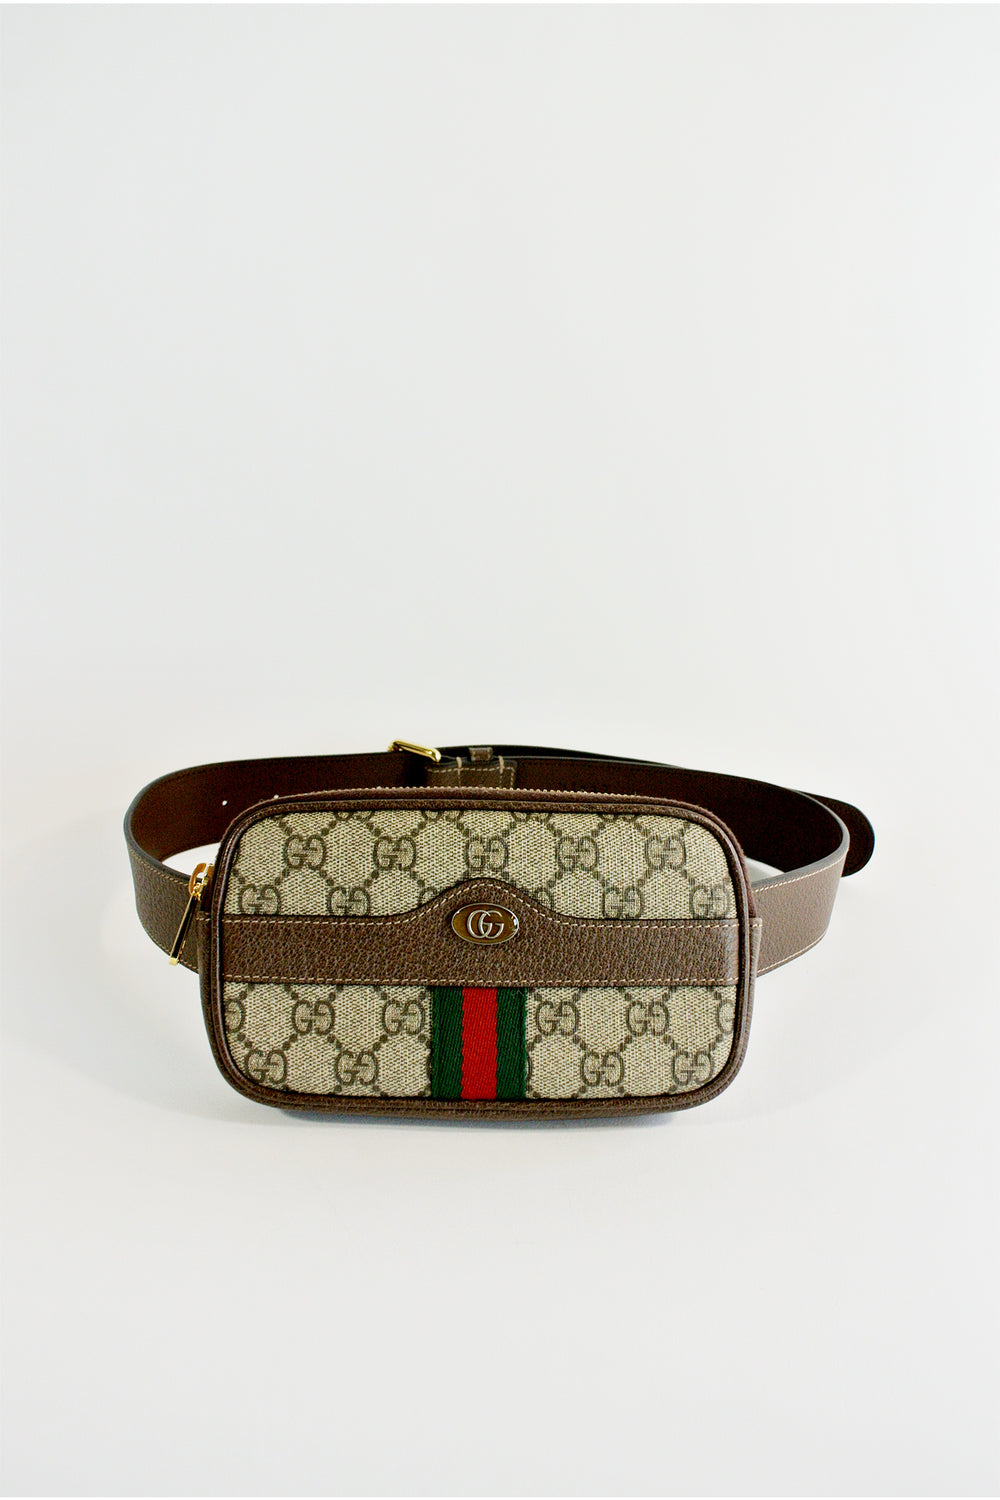 1cb8b7136d6653 Gucci Brown GG Supreme Ophidia iPhone Case Belt Bag ...